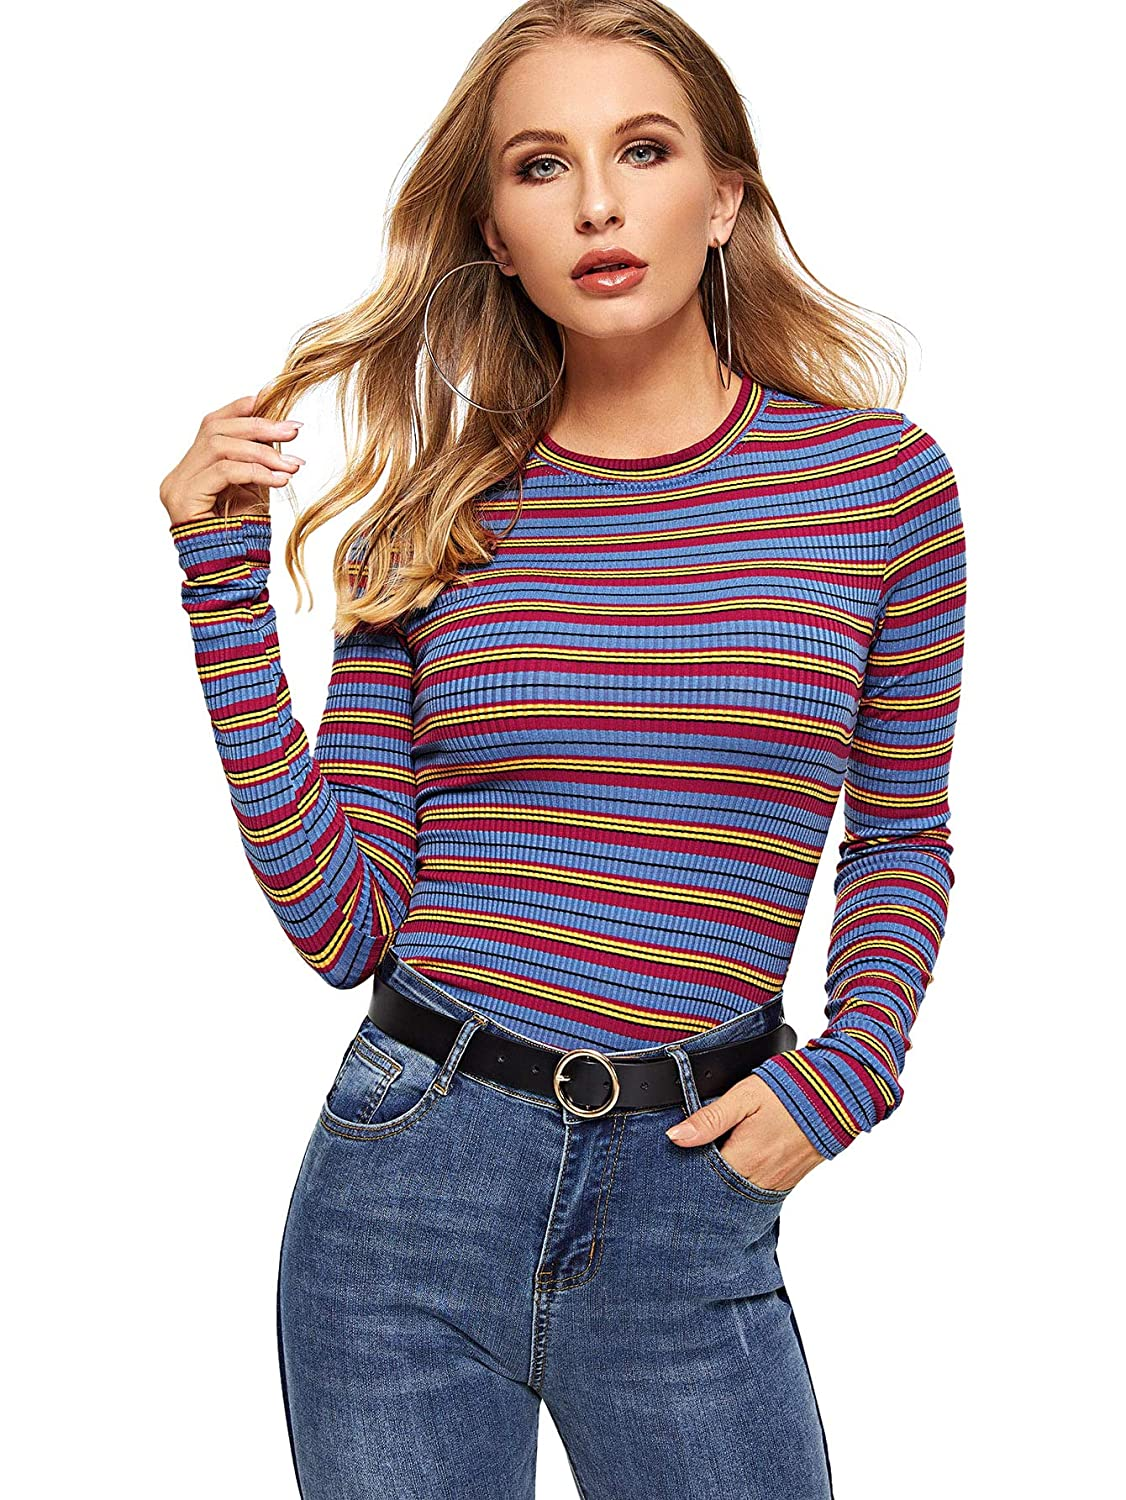 Amulti3 Milumia Women's Casual Striped Ribbed Tee Knit Crop Top